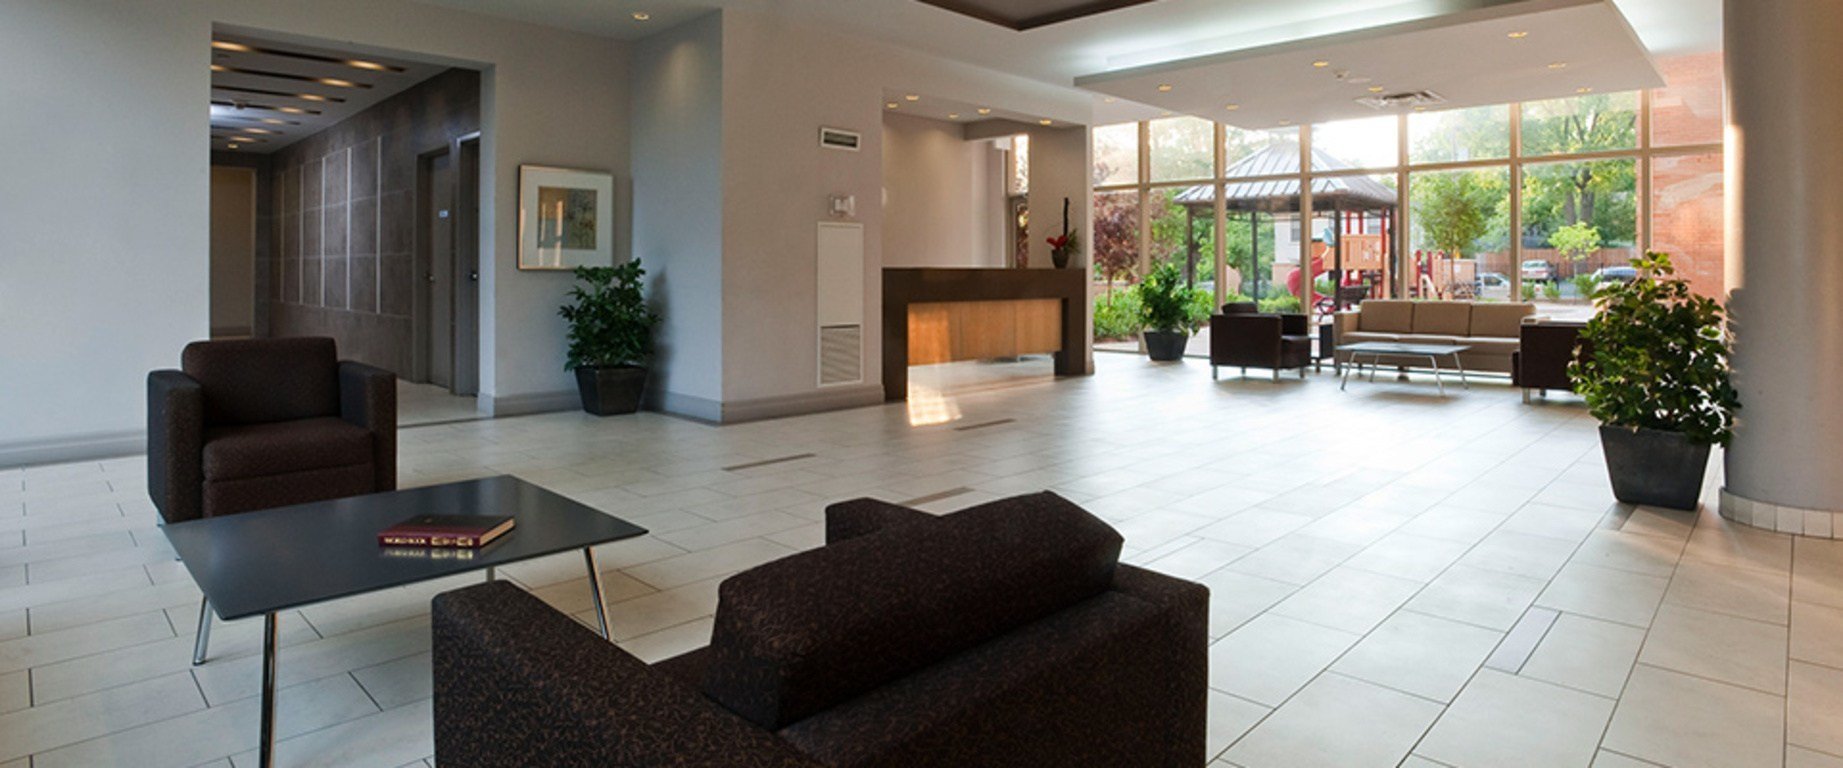 Best Brampton Apartments And Houses For Rent Brampton Rental With Pictures